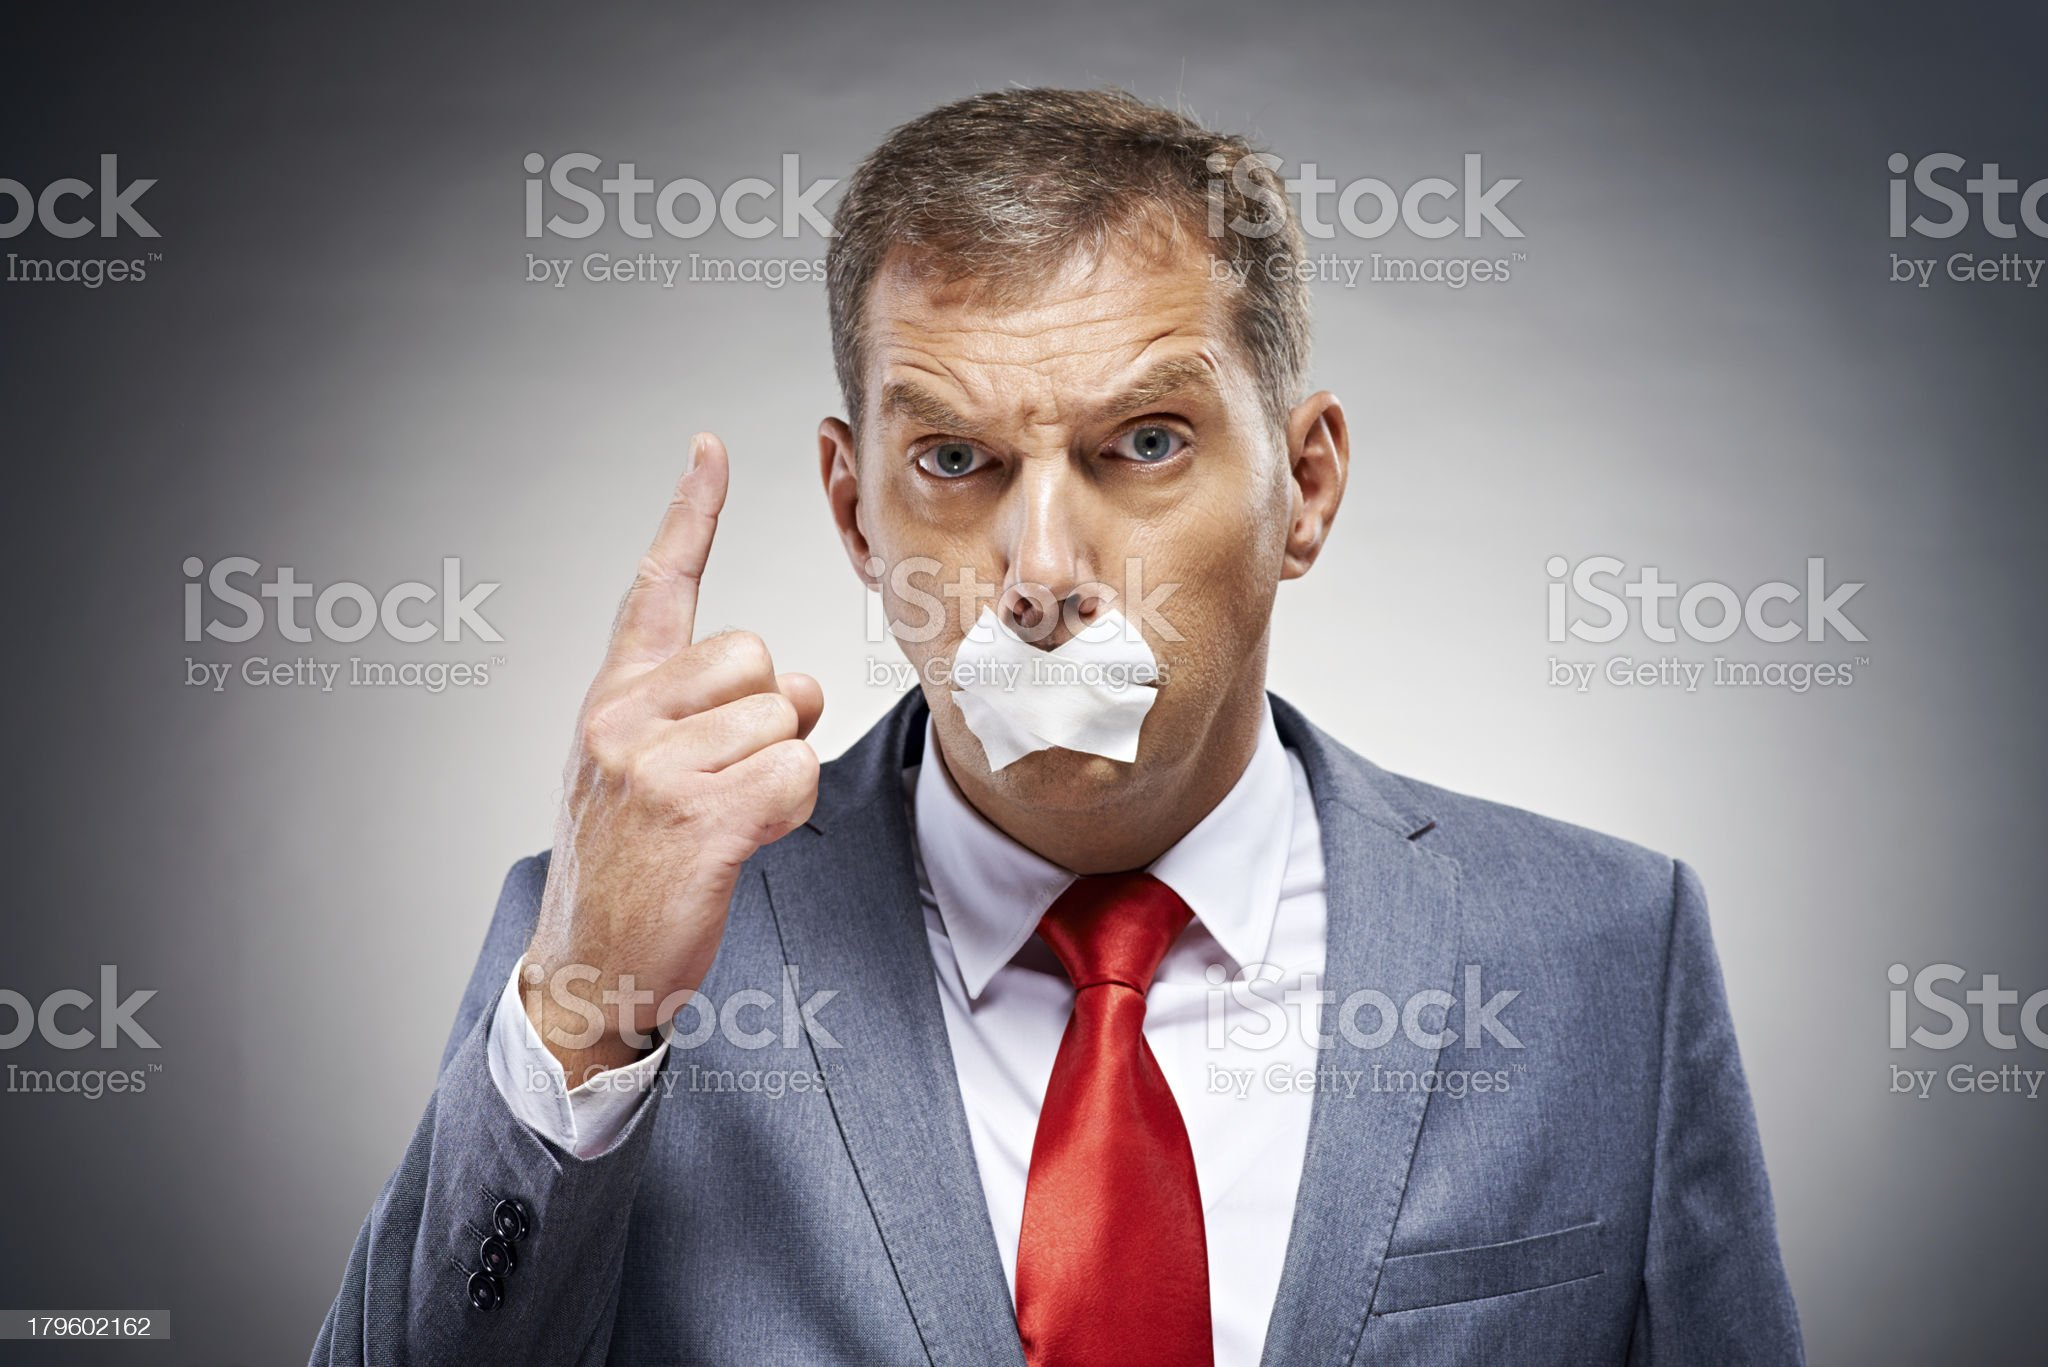 I'm totally forbidden to speak about this! royalty-free stock photo